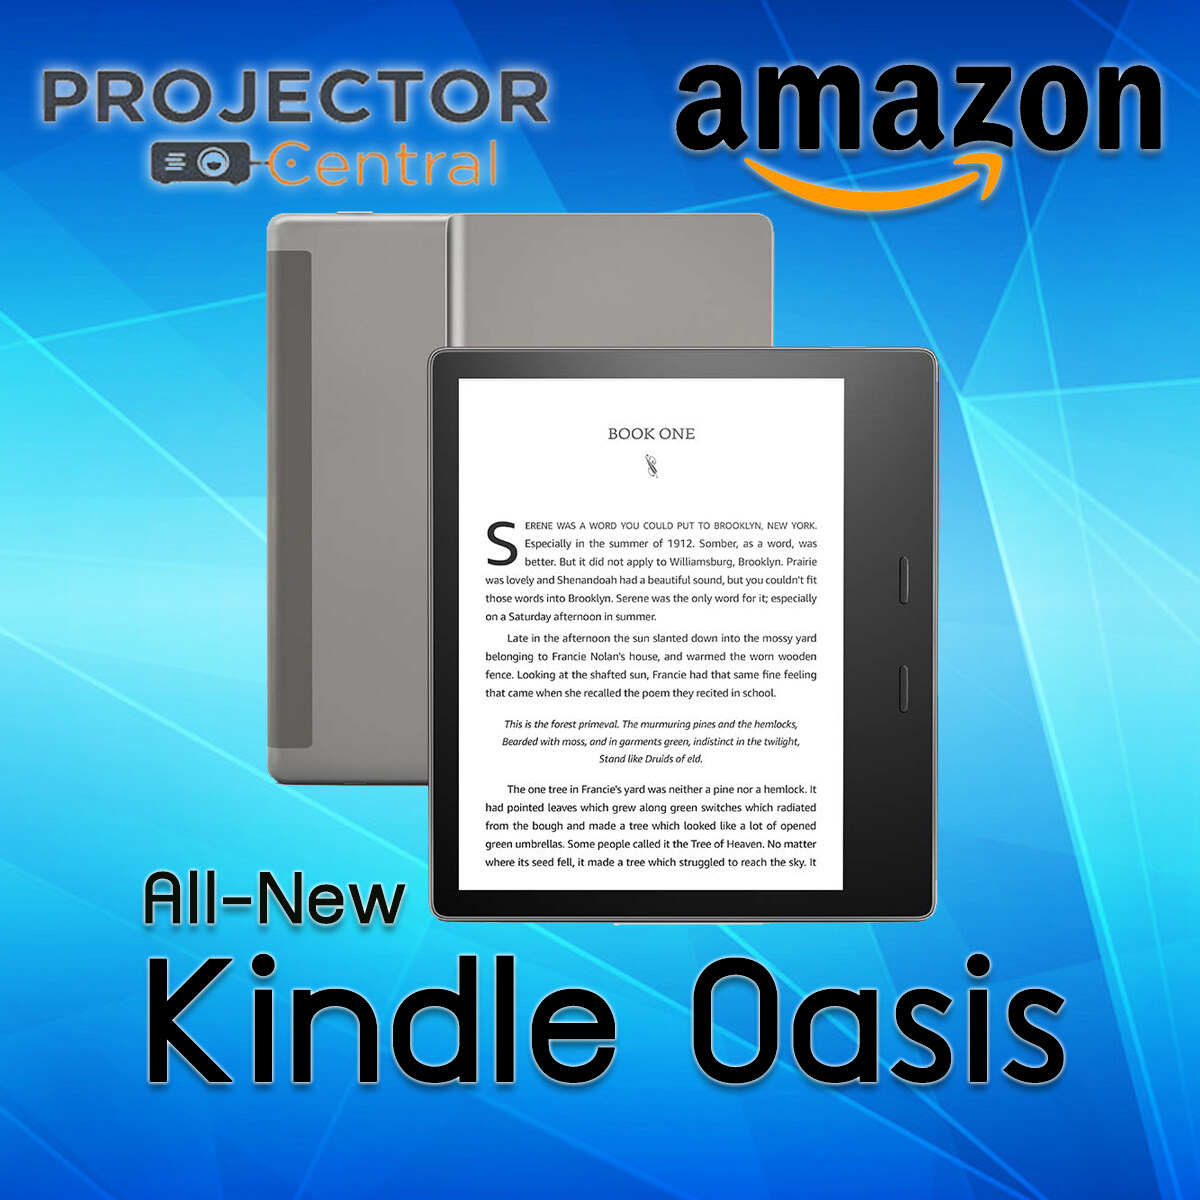 All-New Kindle Oasis E-Reader - 7  High-Resolution Display (300 Ppi), Waterproof, Built-In Audible, 32 Gb, Wi-Fi - Includes Special Offers.